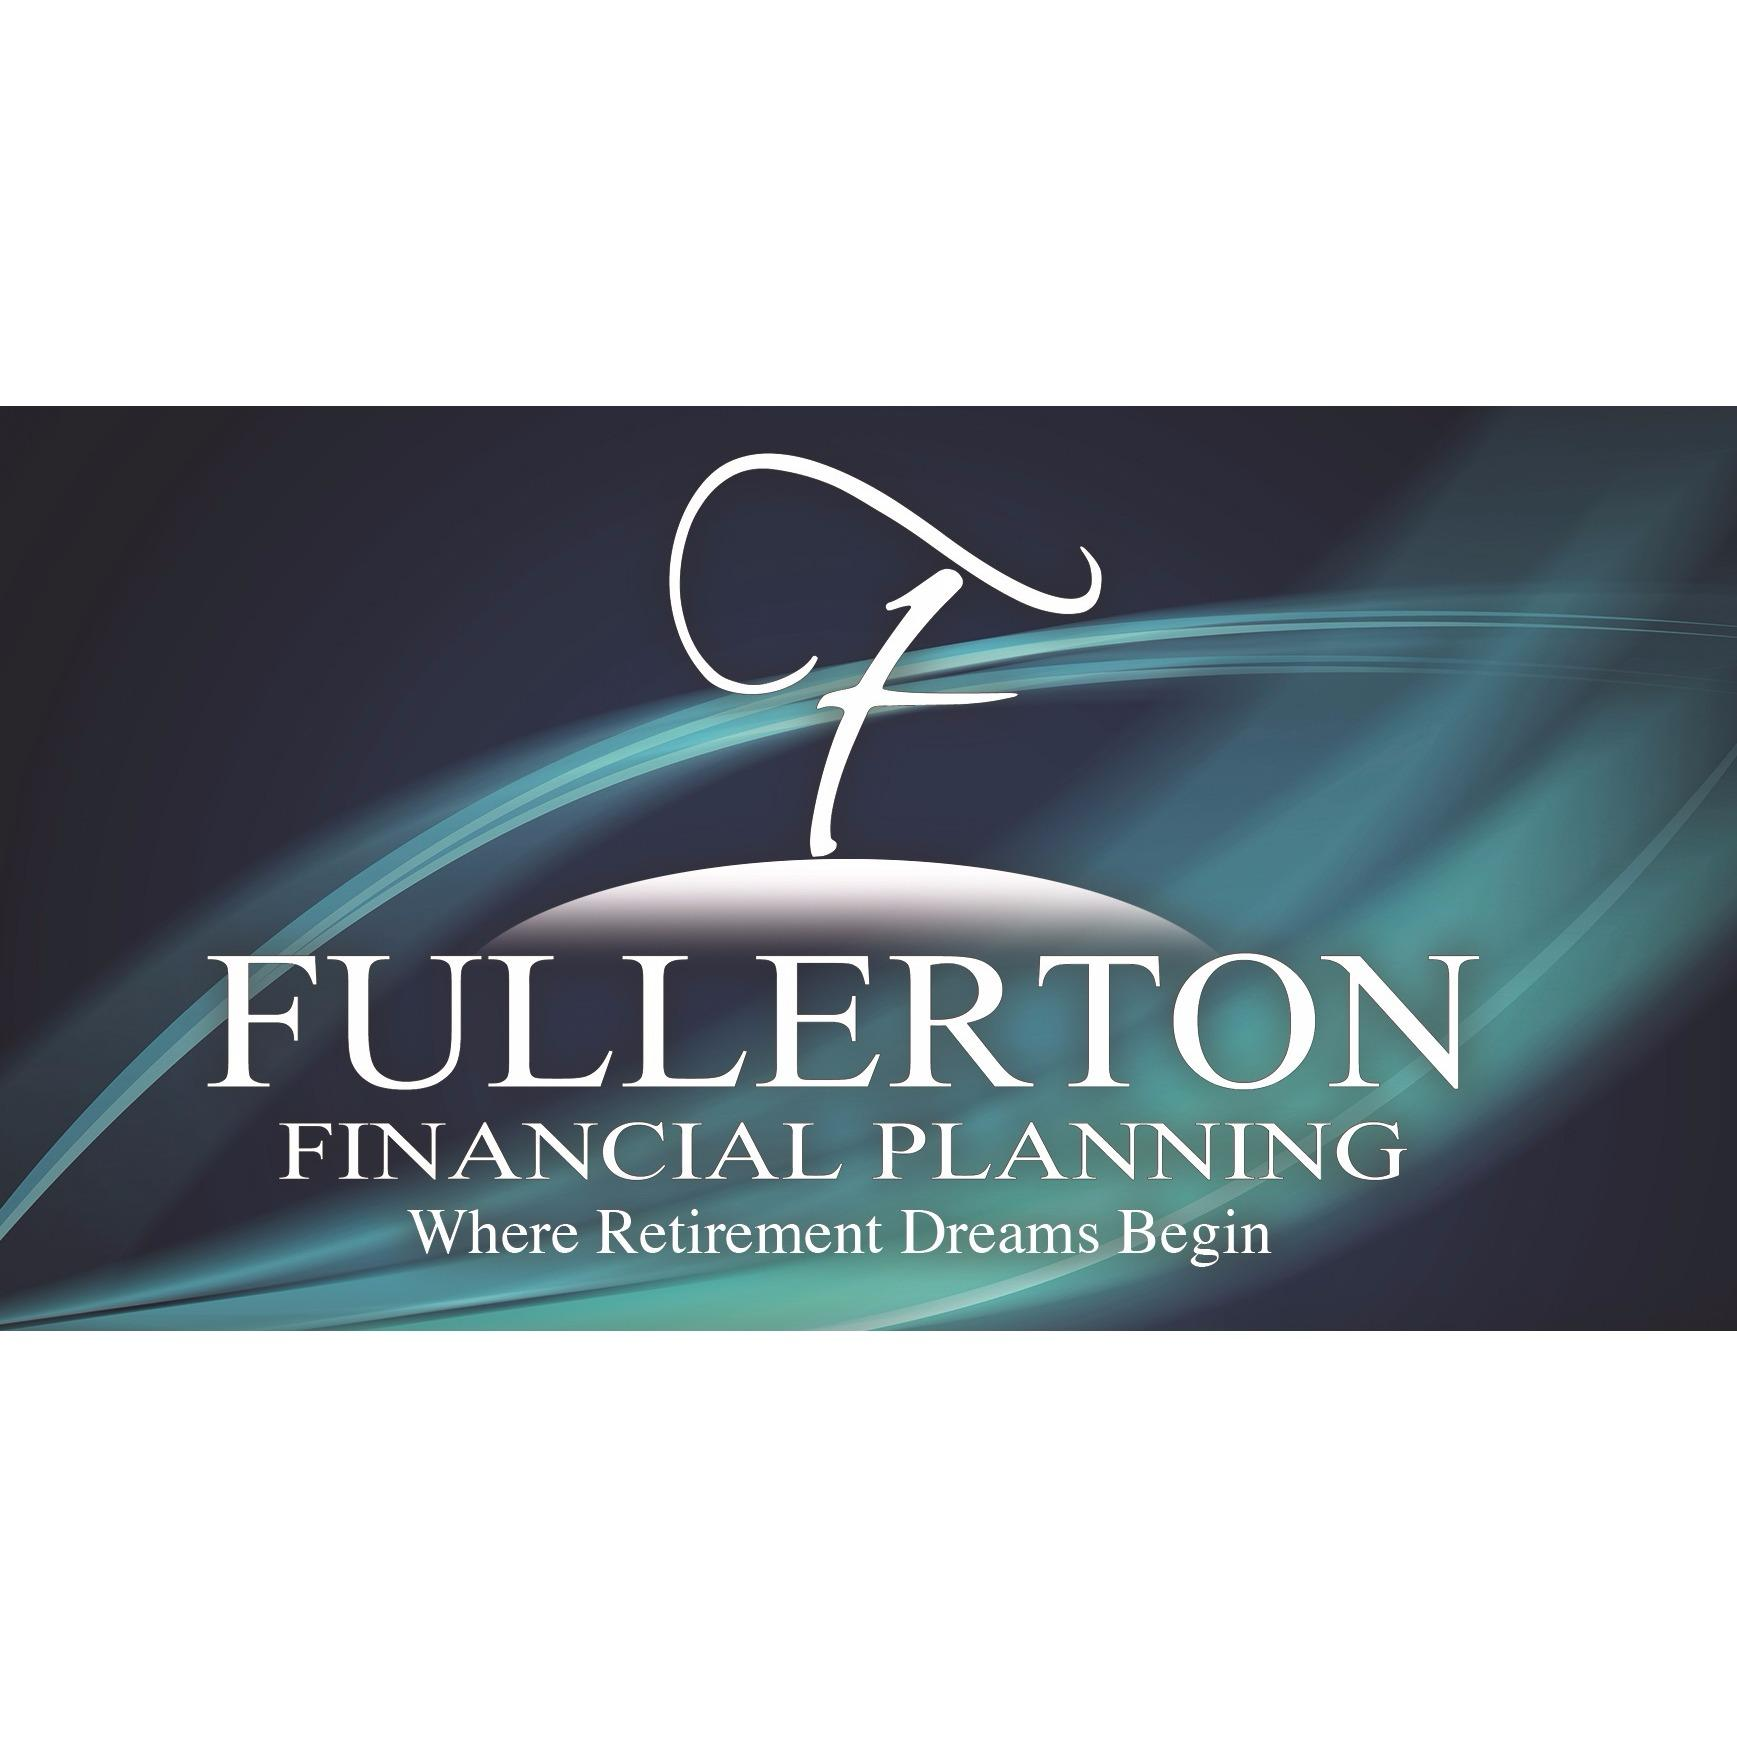 Fullerton Financial Planning